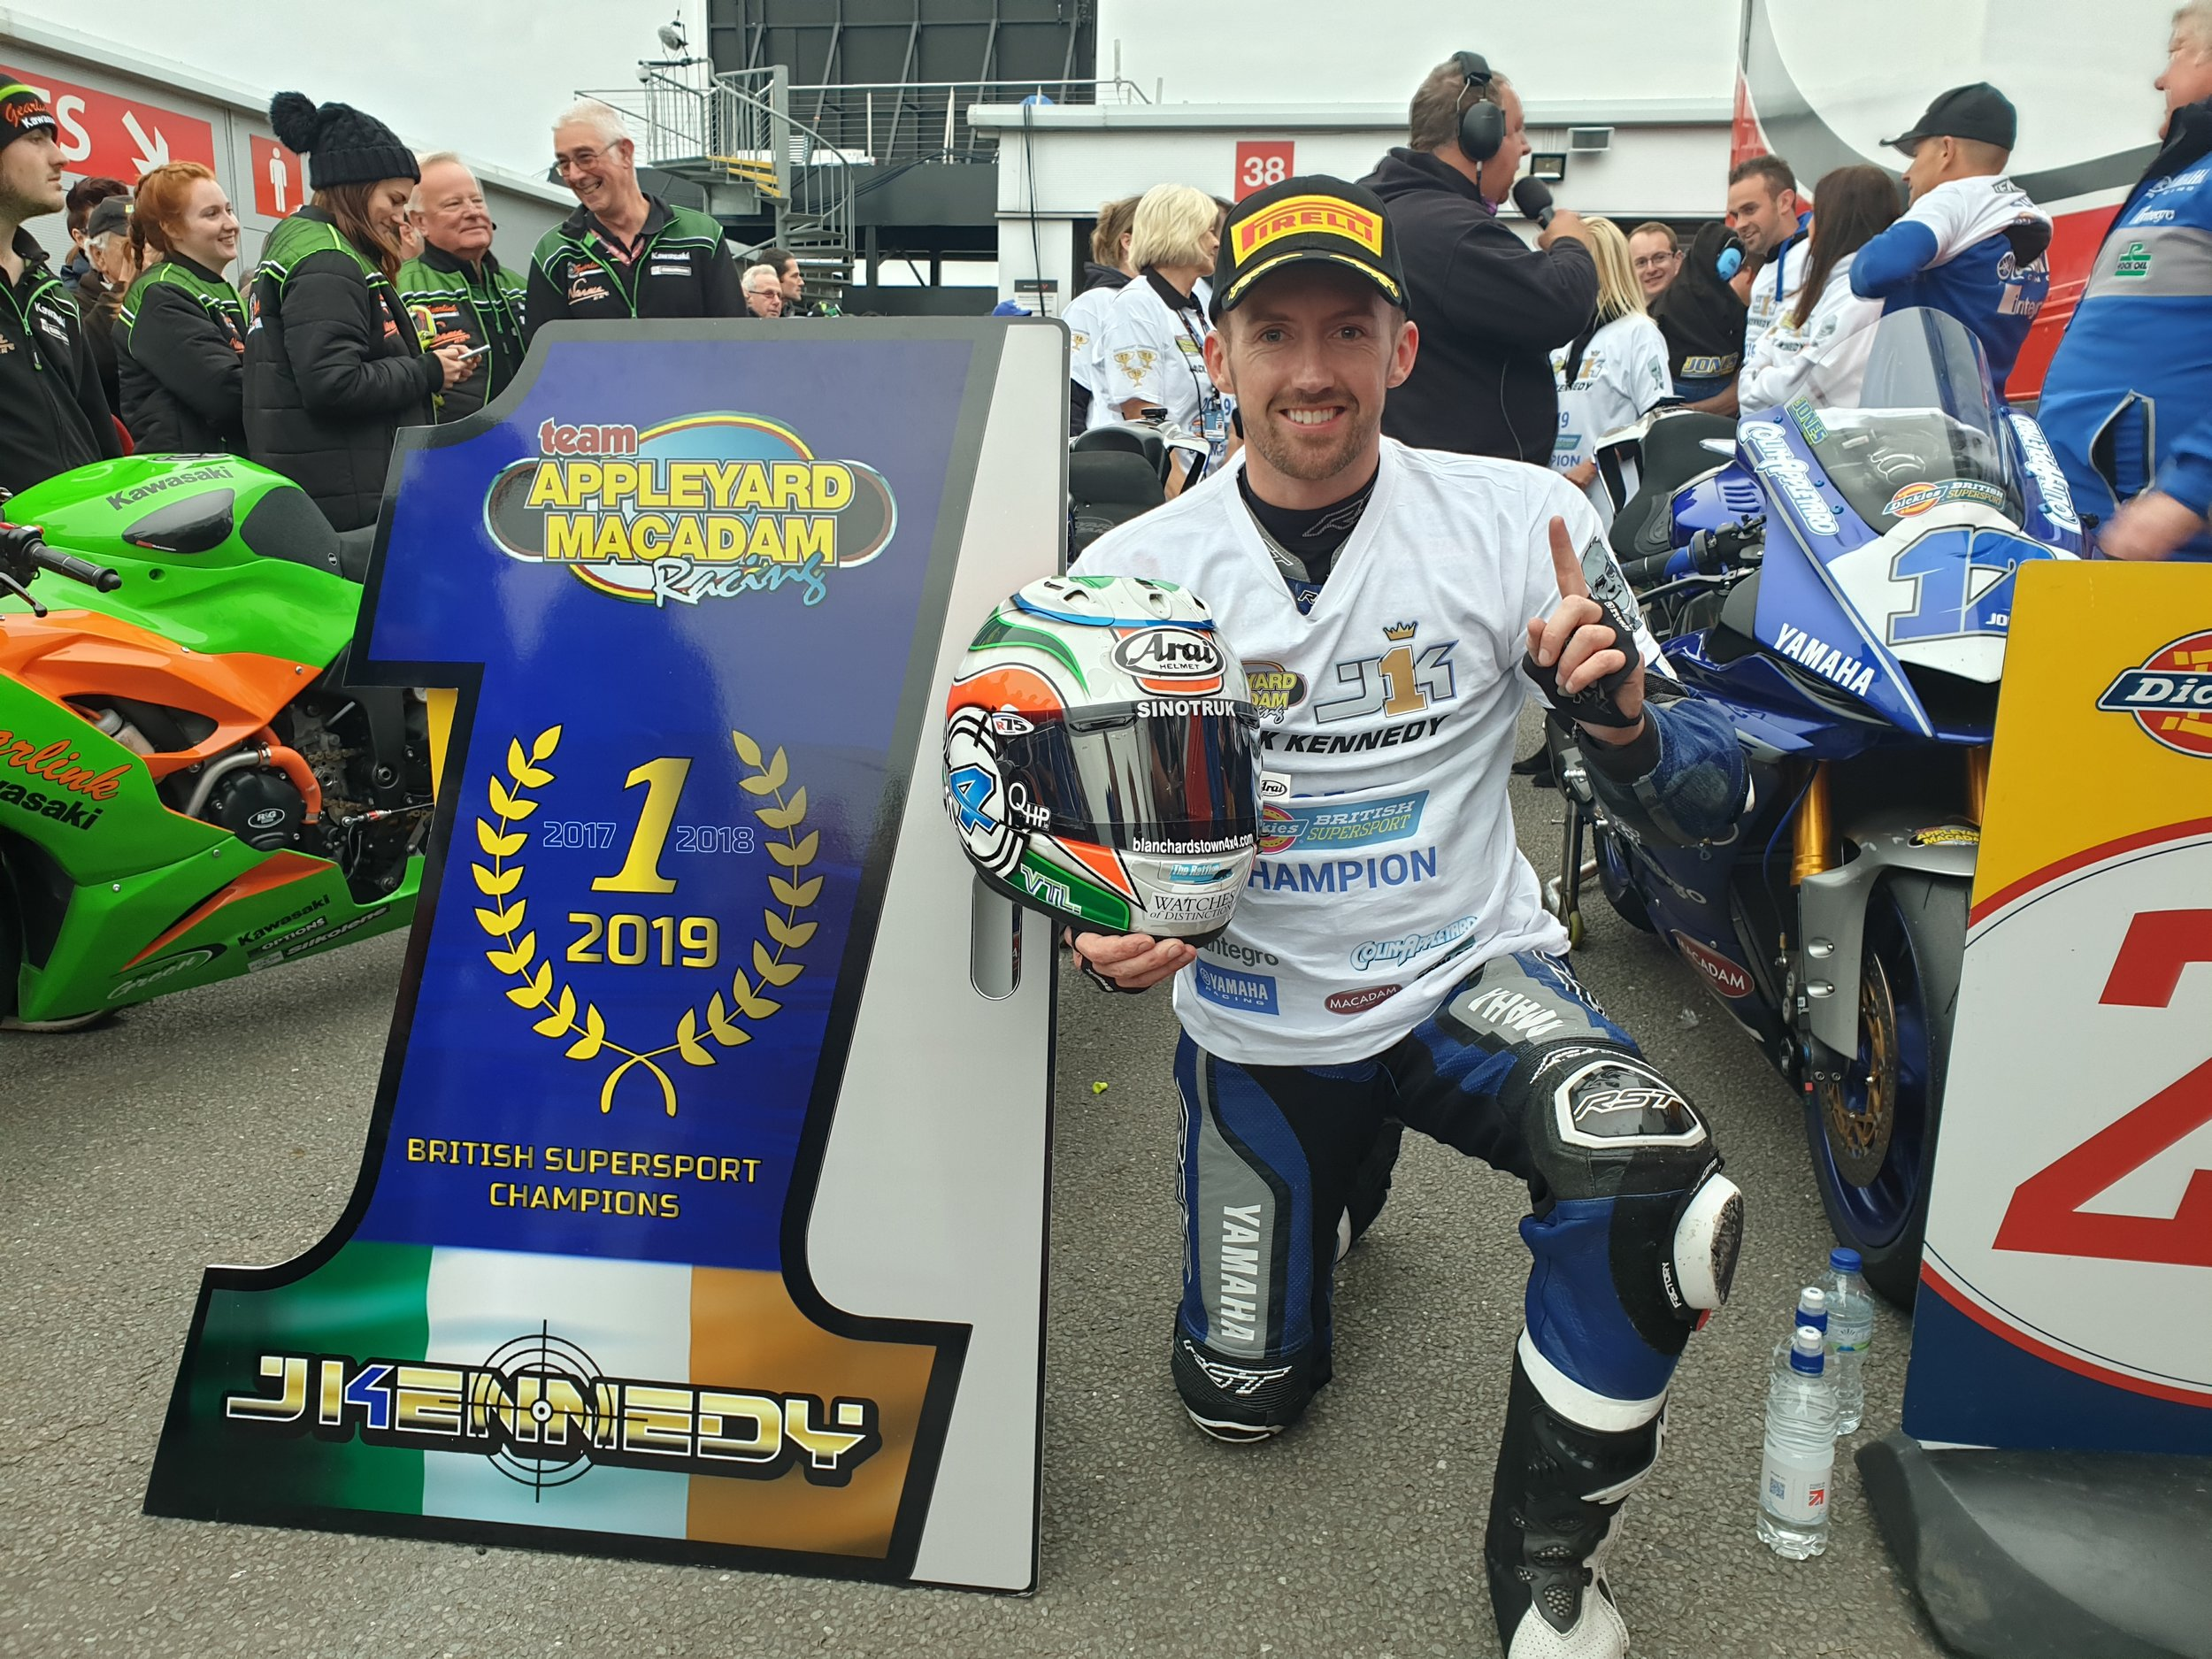 Jack Kennedy wins the 2019 Dickies British Supersport Championship